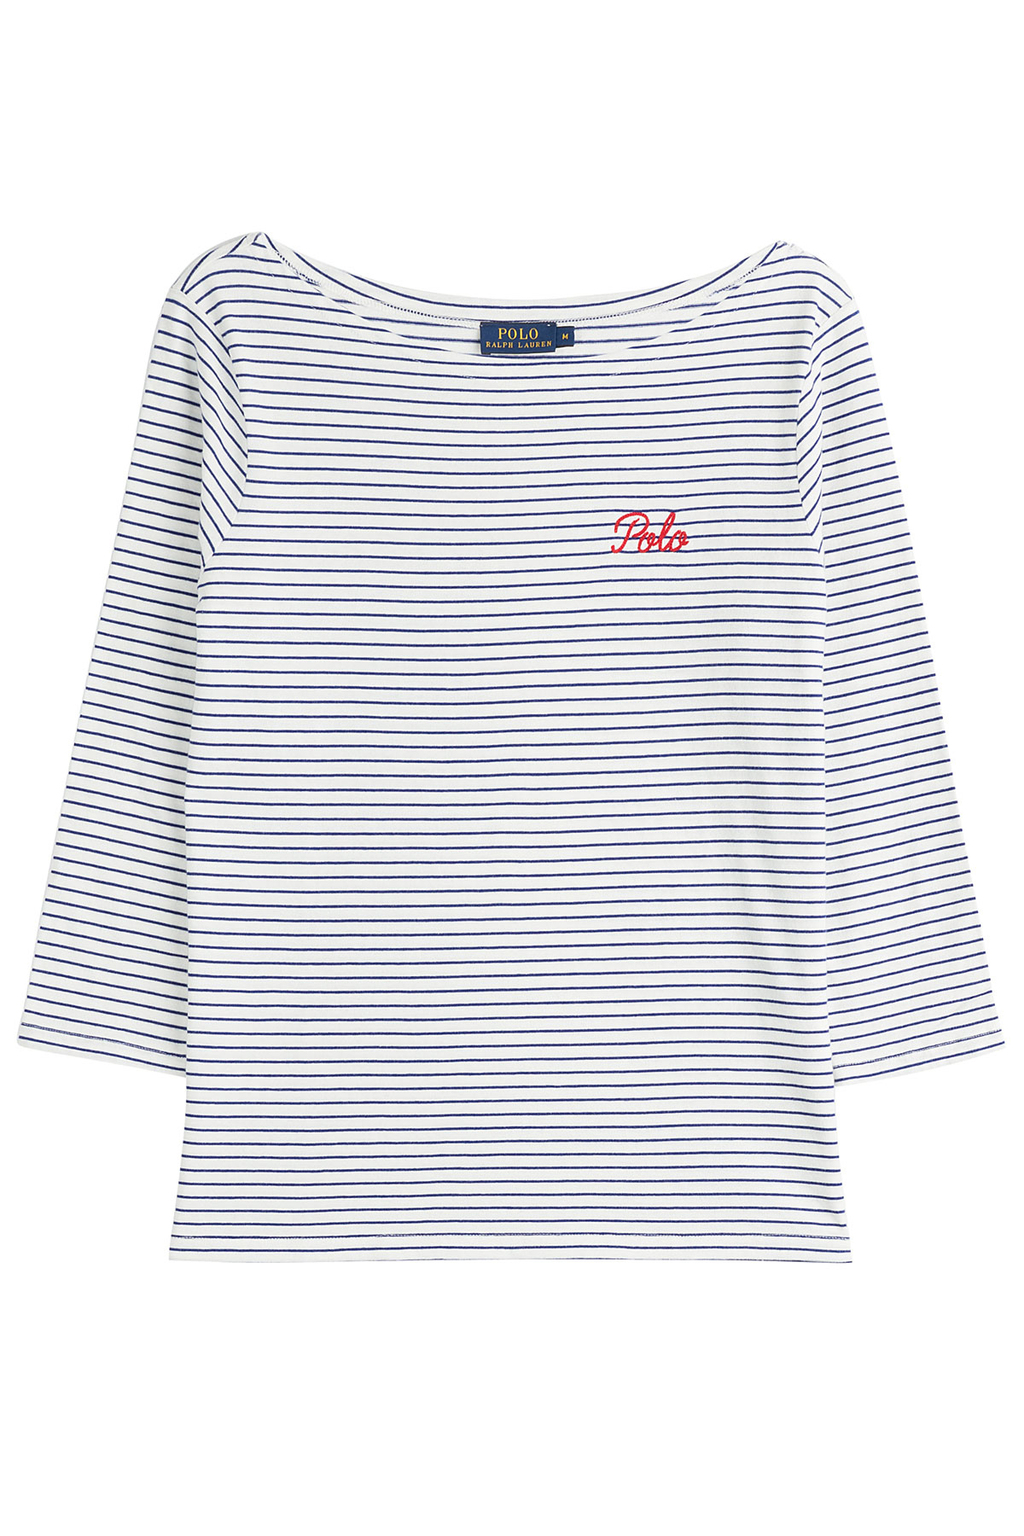 Cotton Boatneck Top Stripes - neckline: slash/boat neckline; pattern: horizontal stripes; predominant colour: navy; occasions: casual, creative work; length: standard; style: top; fibres: cotton - 100%; fit: body skimming; sleeve length: 3/4 length; sleeve style: standard; pattern type: fabric; pattern size: standard; texture group: jersey - stretchy/drapey; season: s/s 2016; wardrobe: basic